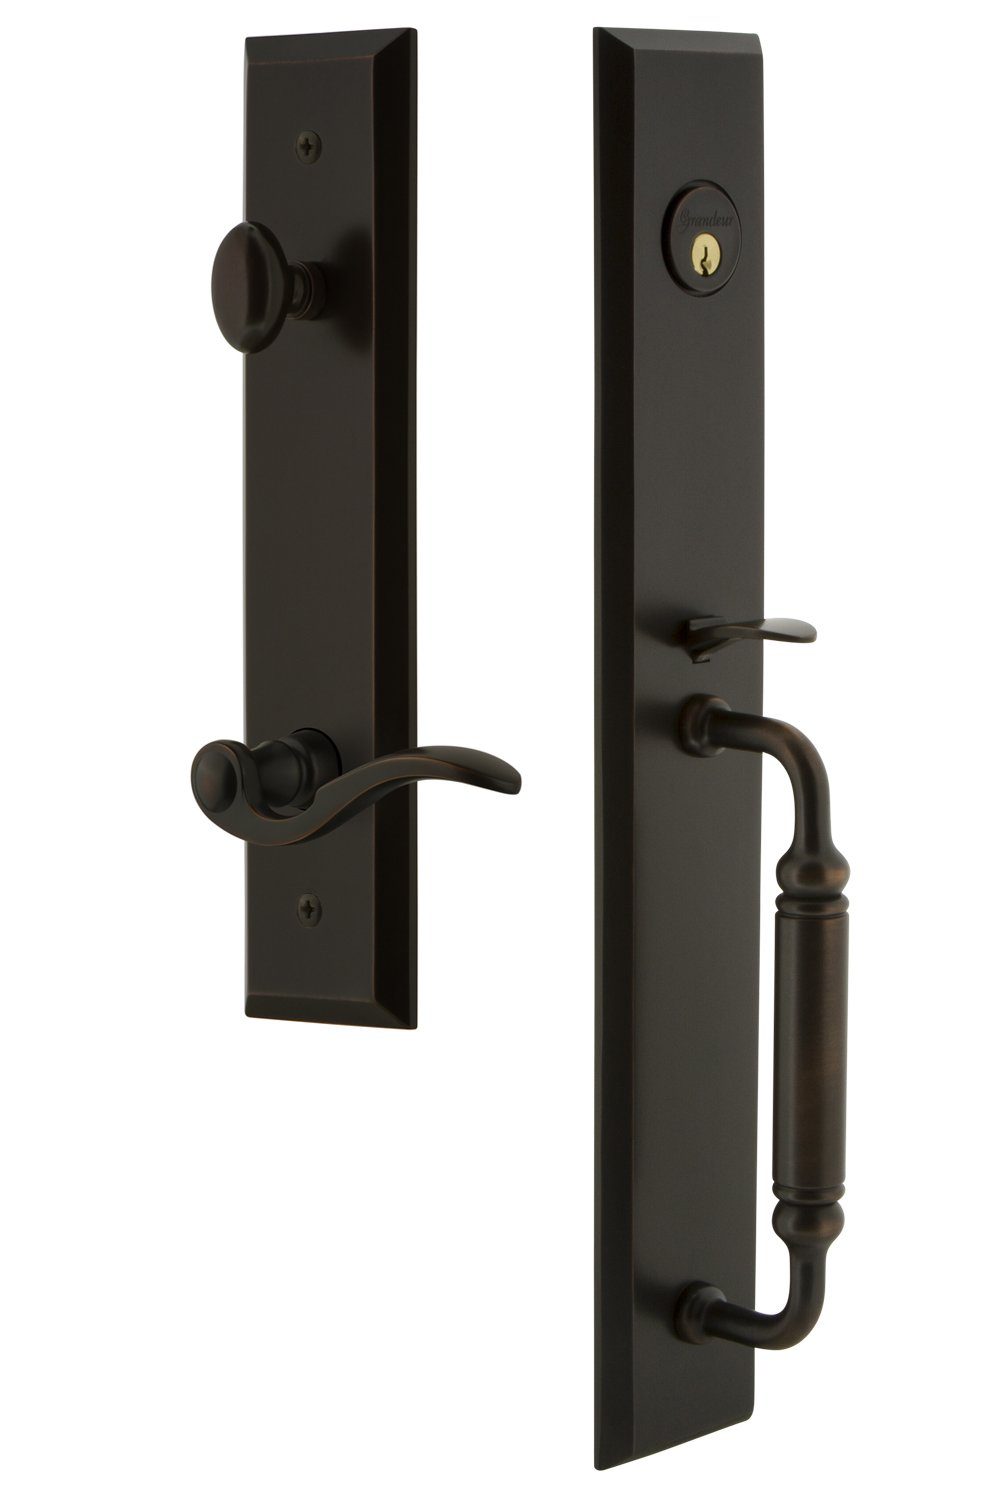 Grandeur 850040 Hardware Fifth Avenue One-Piece Dummy Handleset with C Grip and Bellagio Lever in Vintage Brass